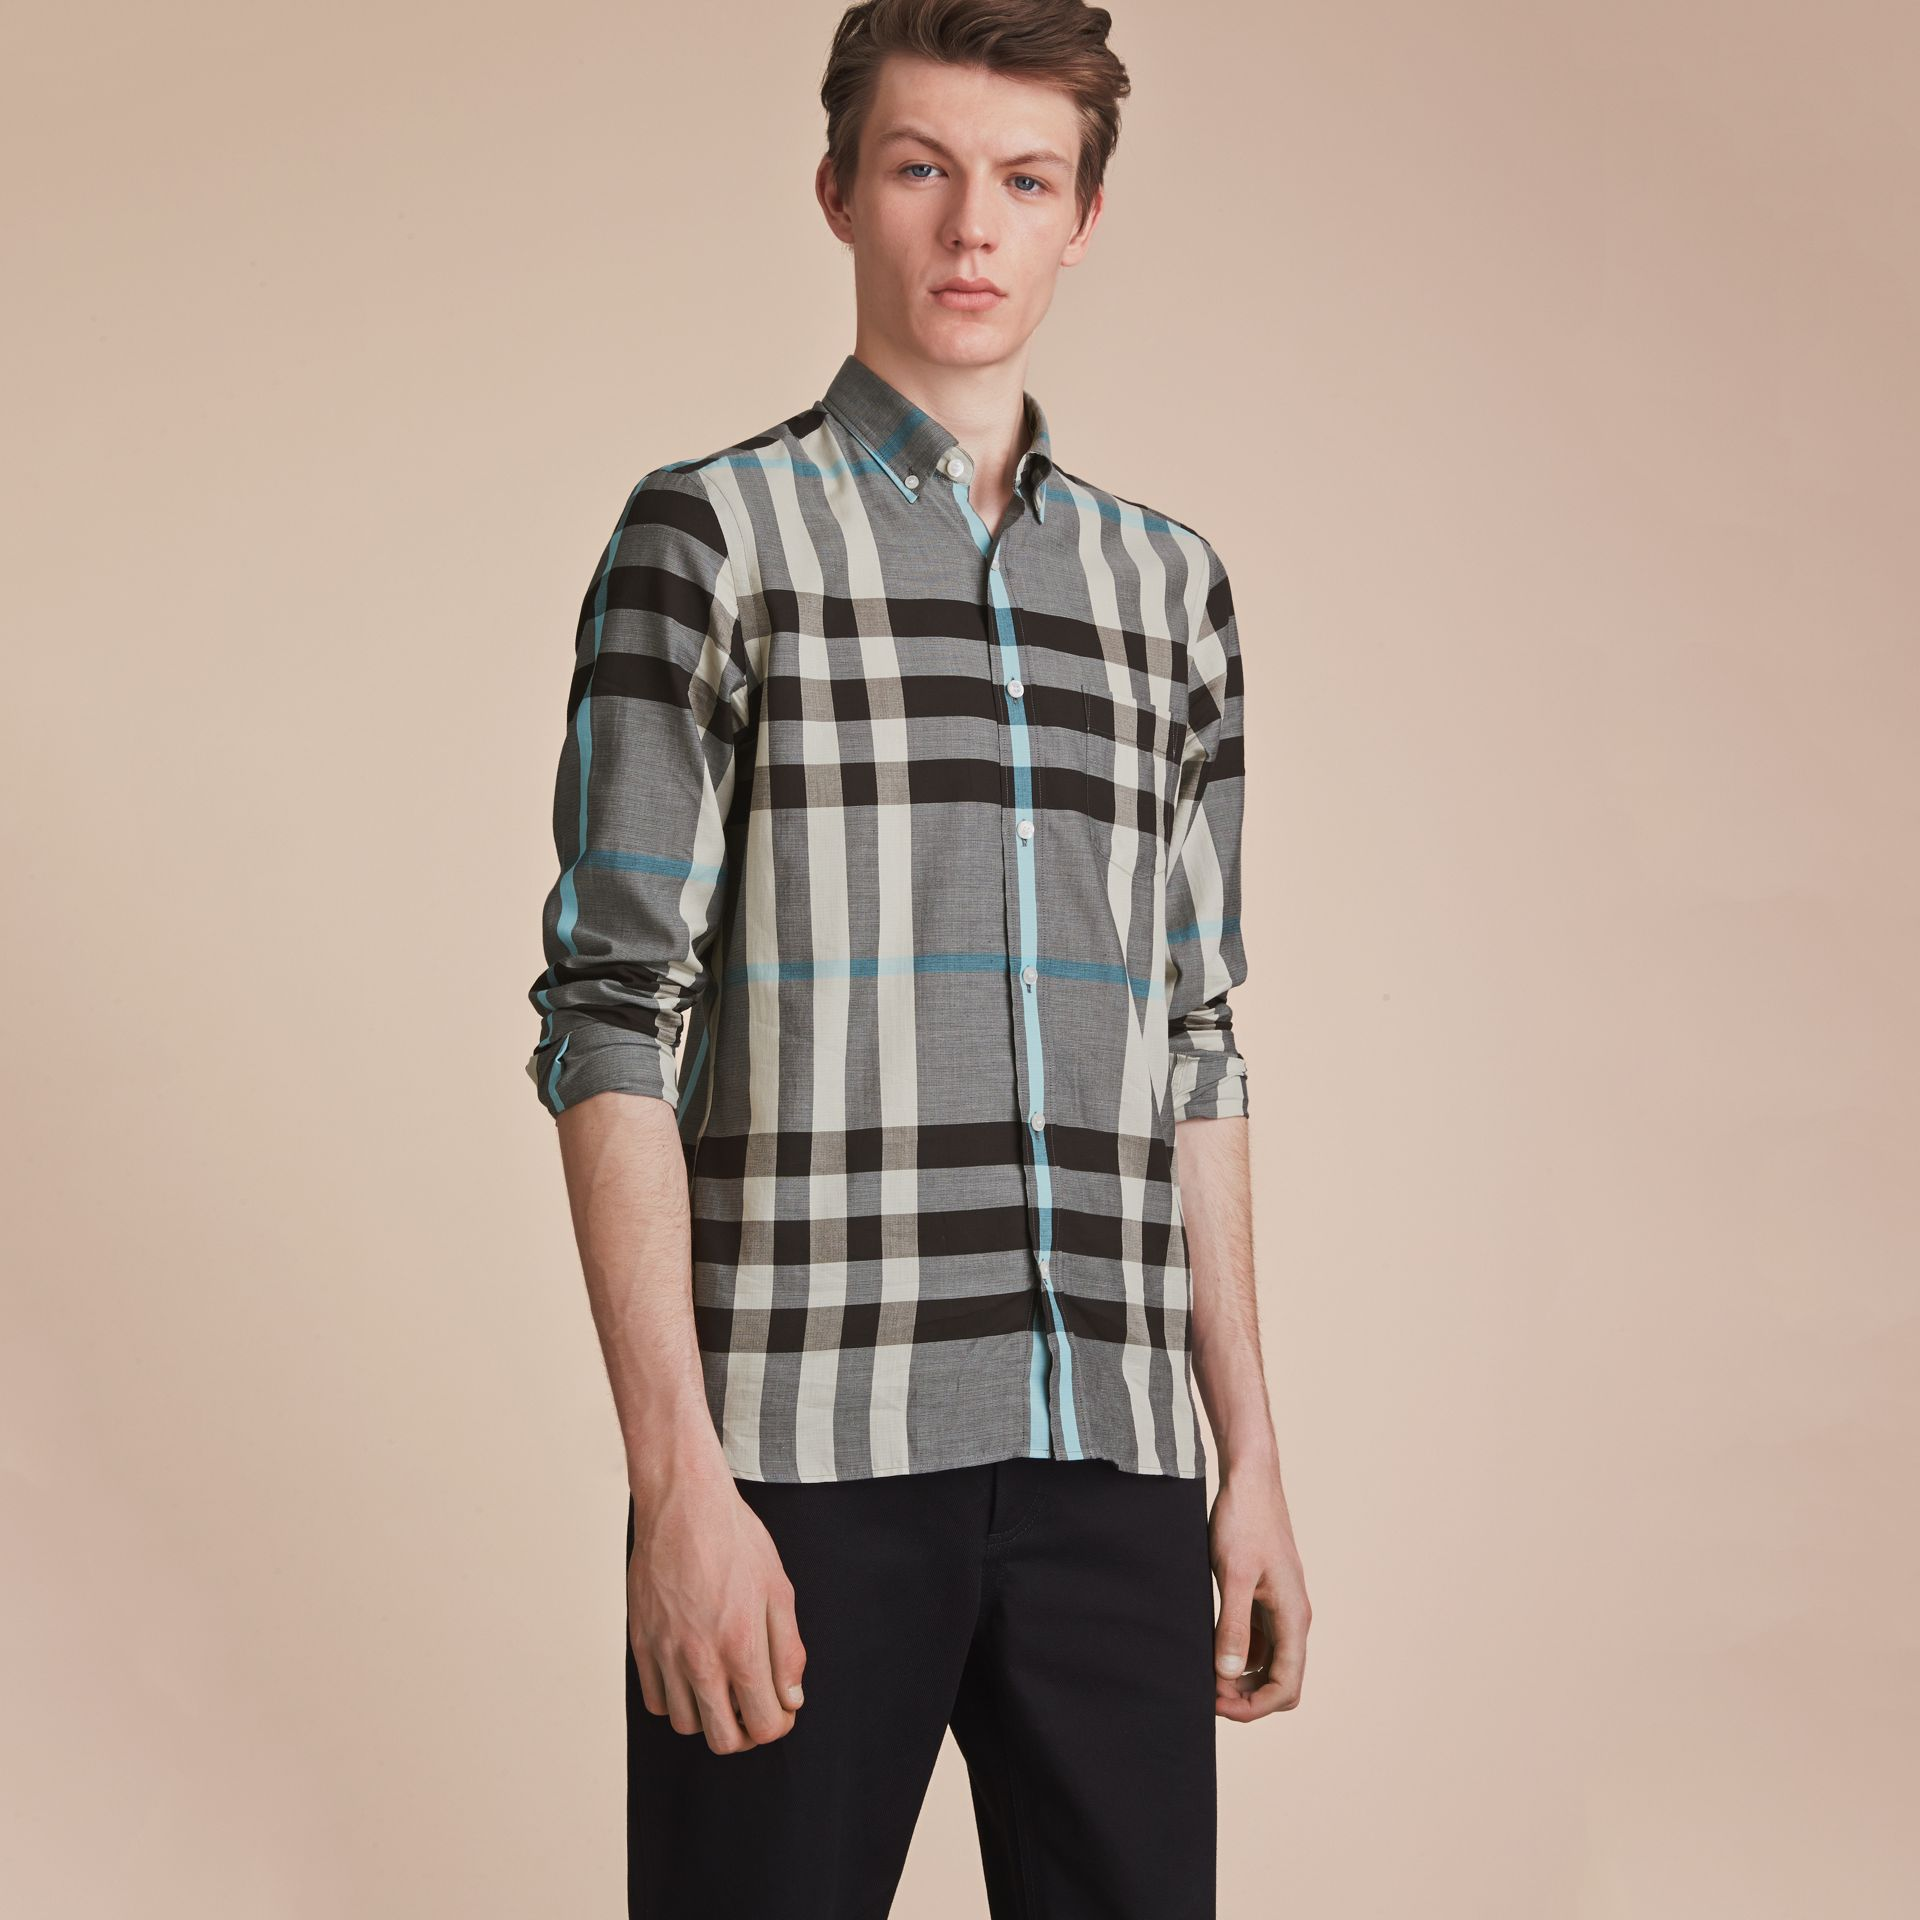 Button-down Collar Check Cotton Poplin Shirt in Mist Grey - Men | Burberry - gallery image 6